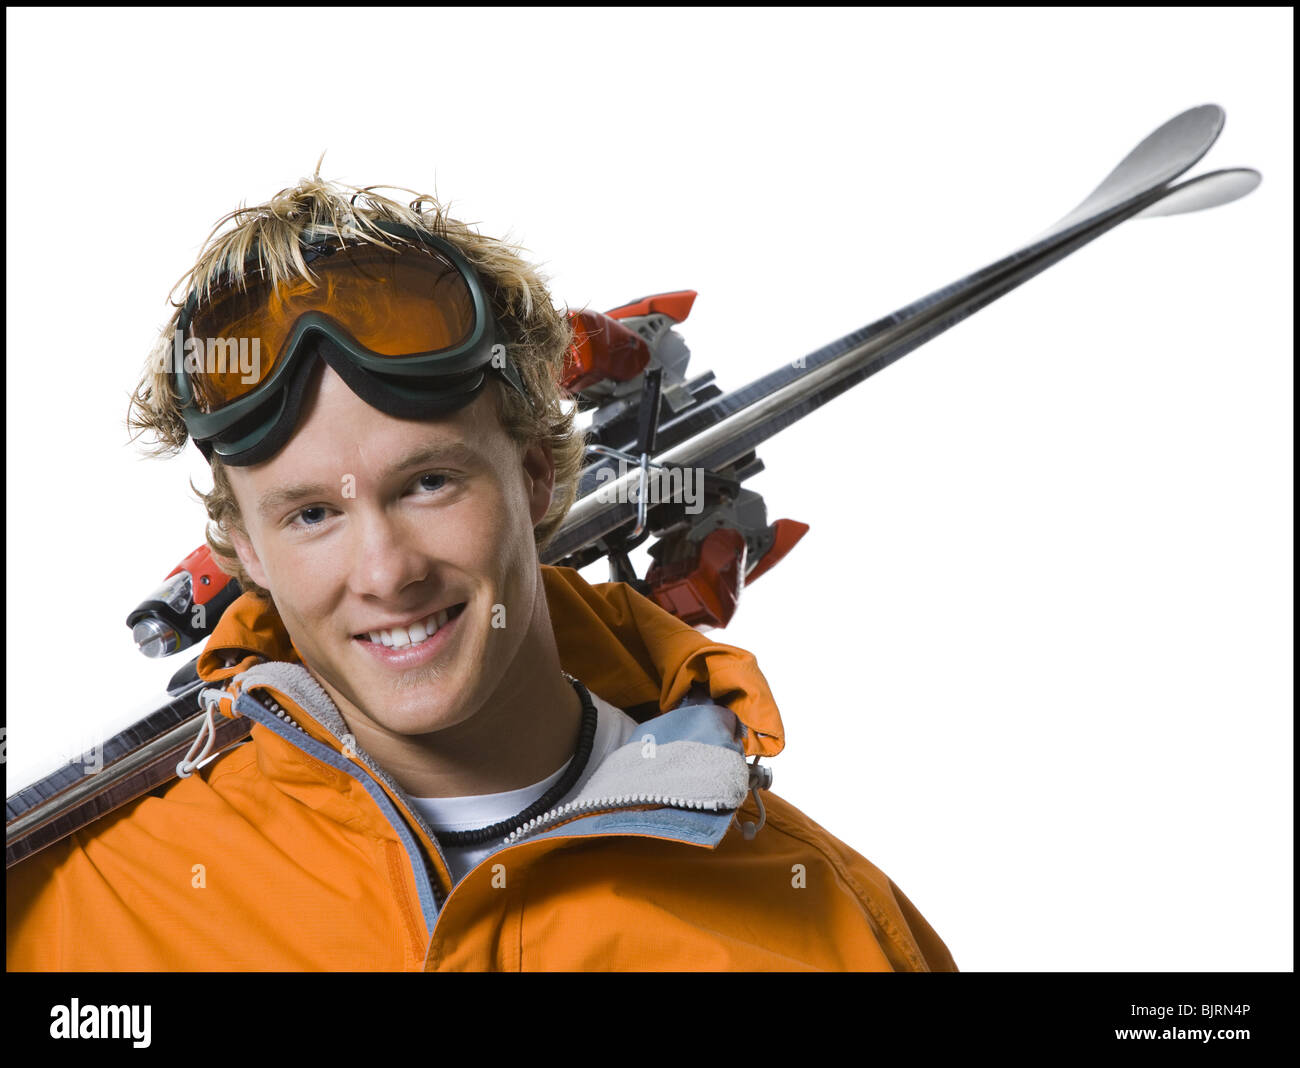 Male skier in orange ski jacket Stock Photo